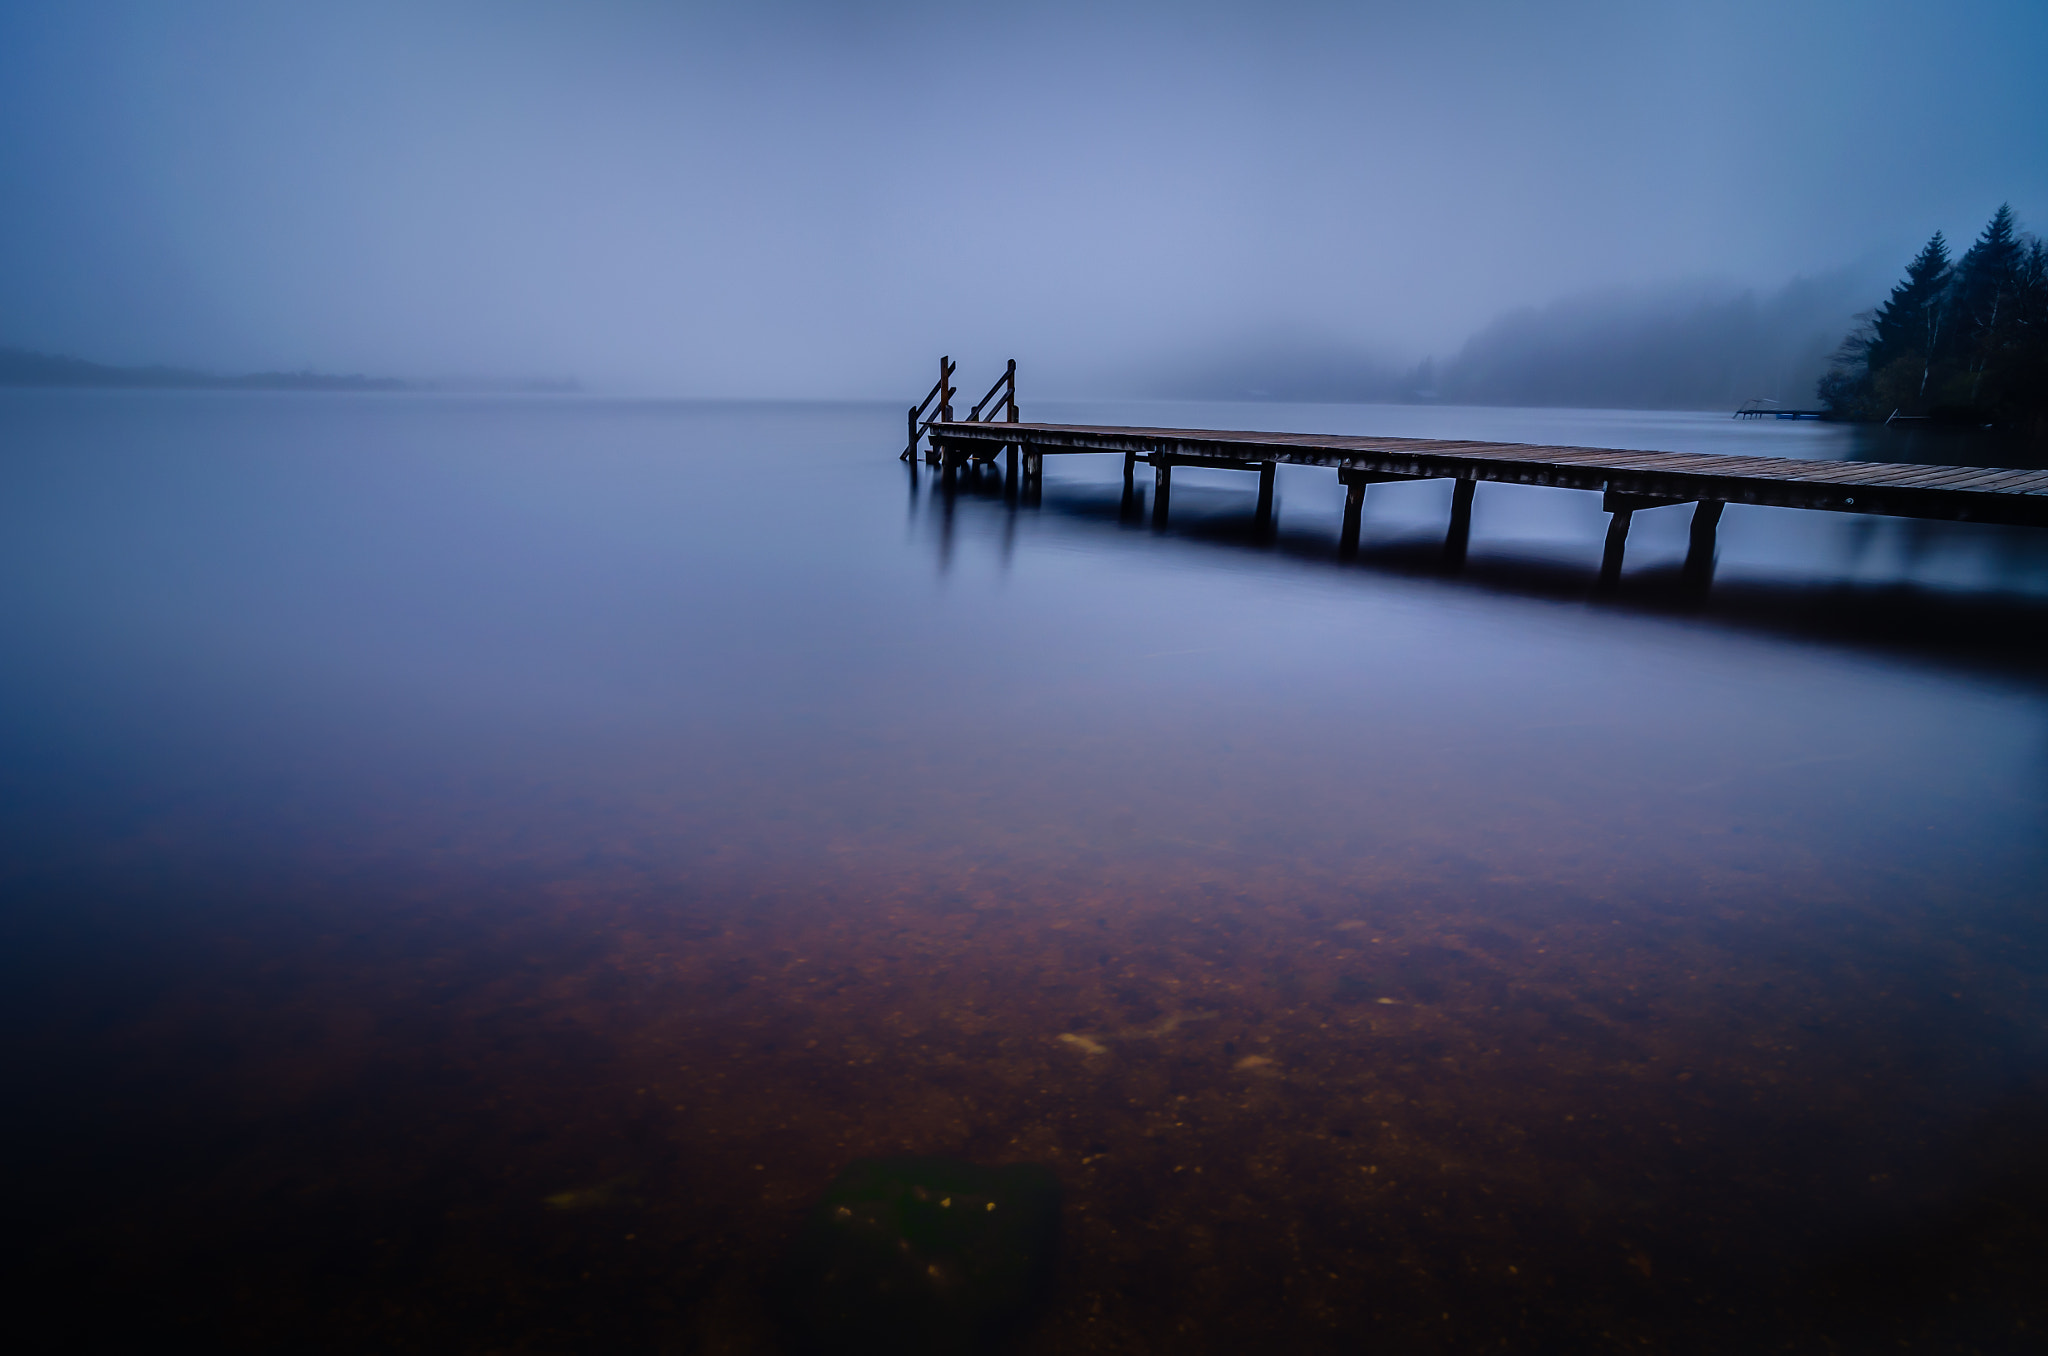 Photograph Silence by Simon Bauer on 500px